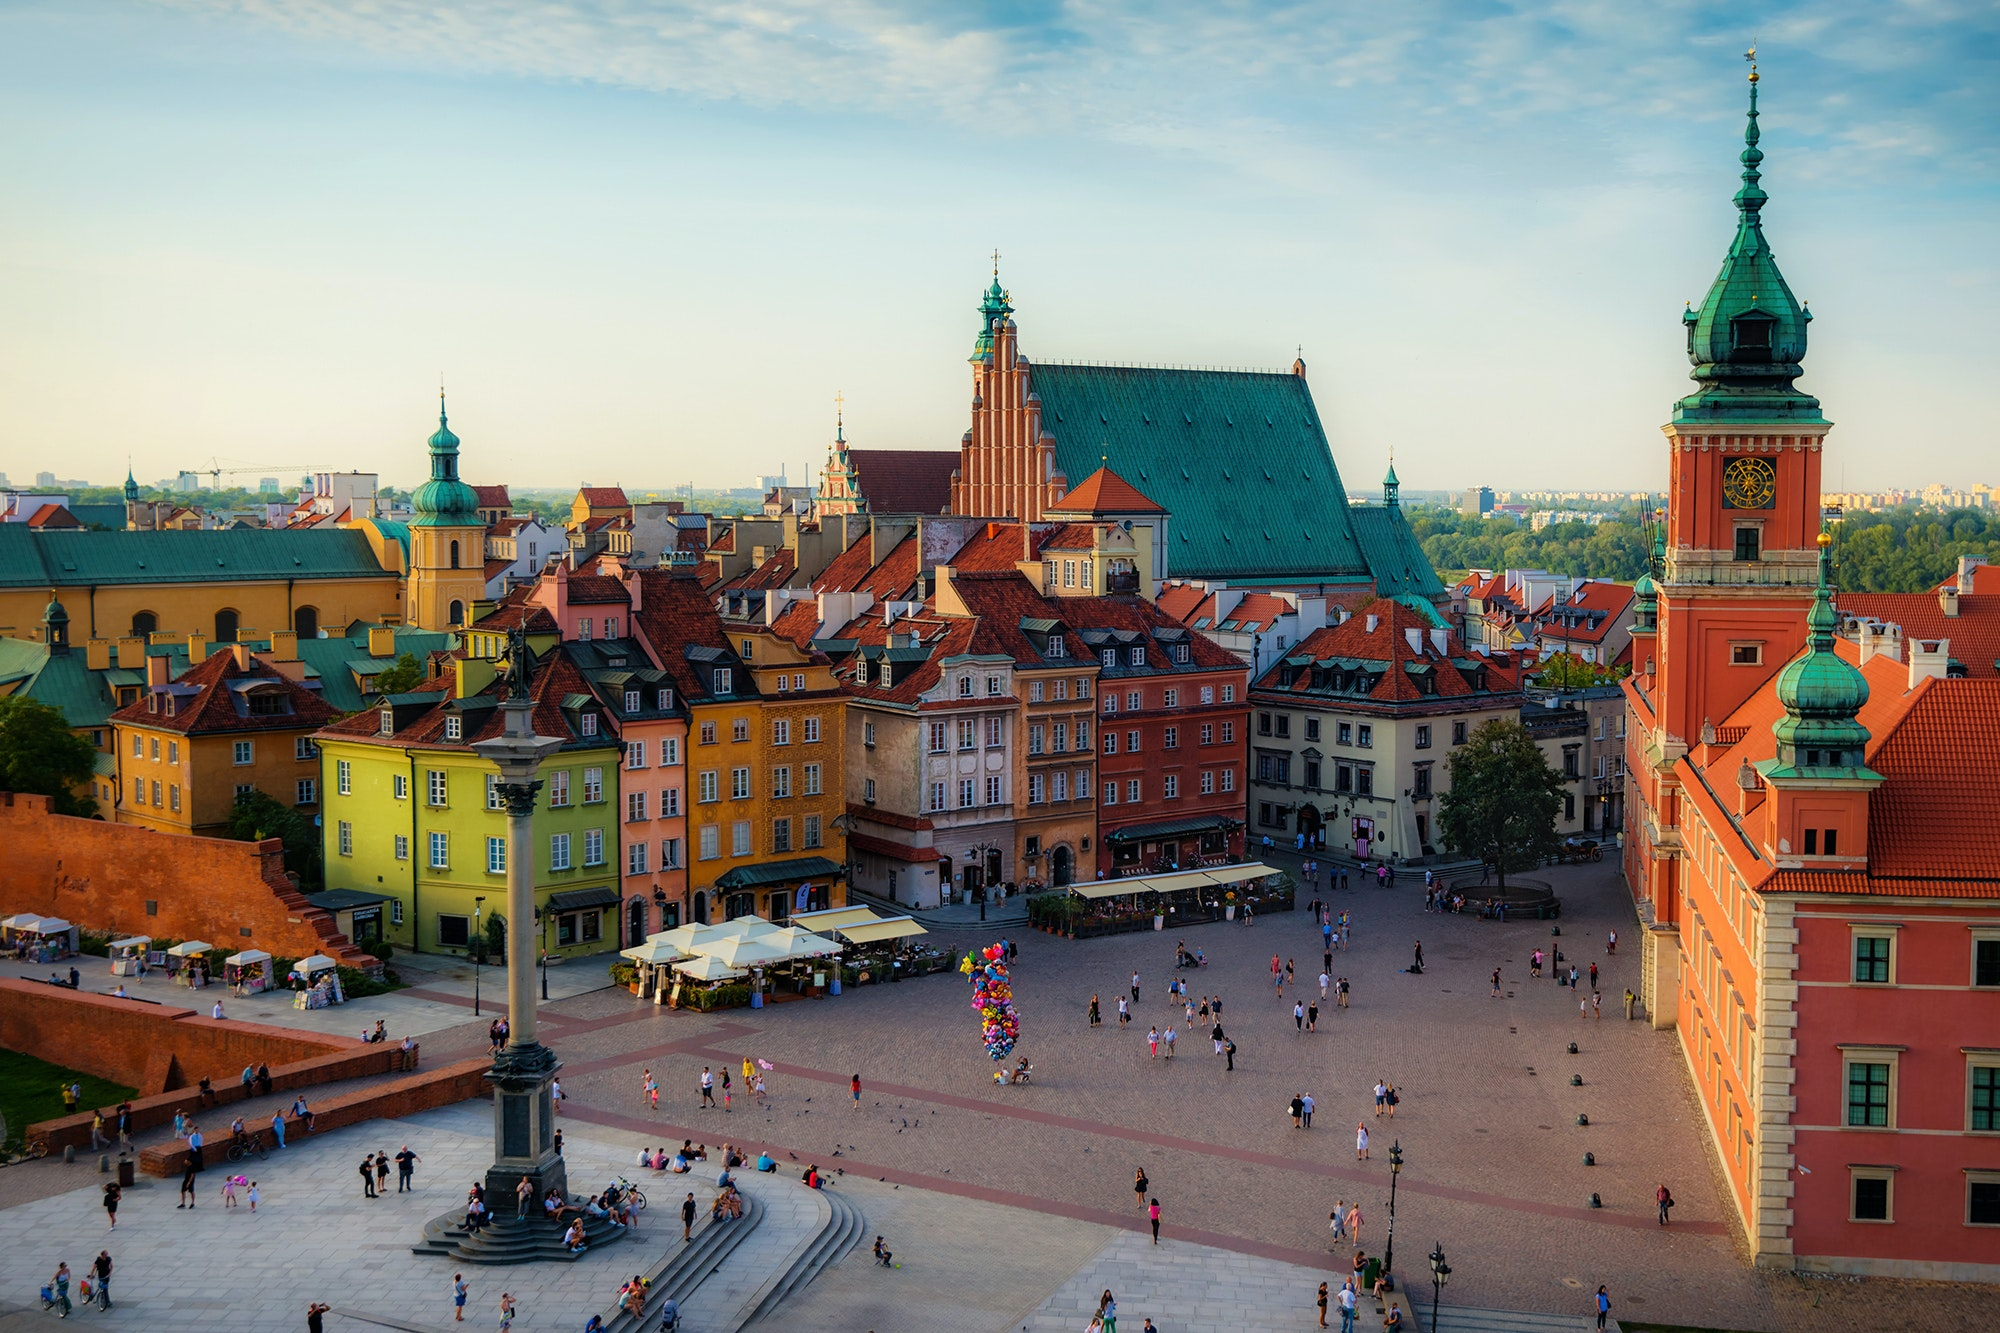 LOT Polish Airlines will begin direct flights from Miami to Warsaw in June 2019.